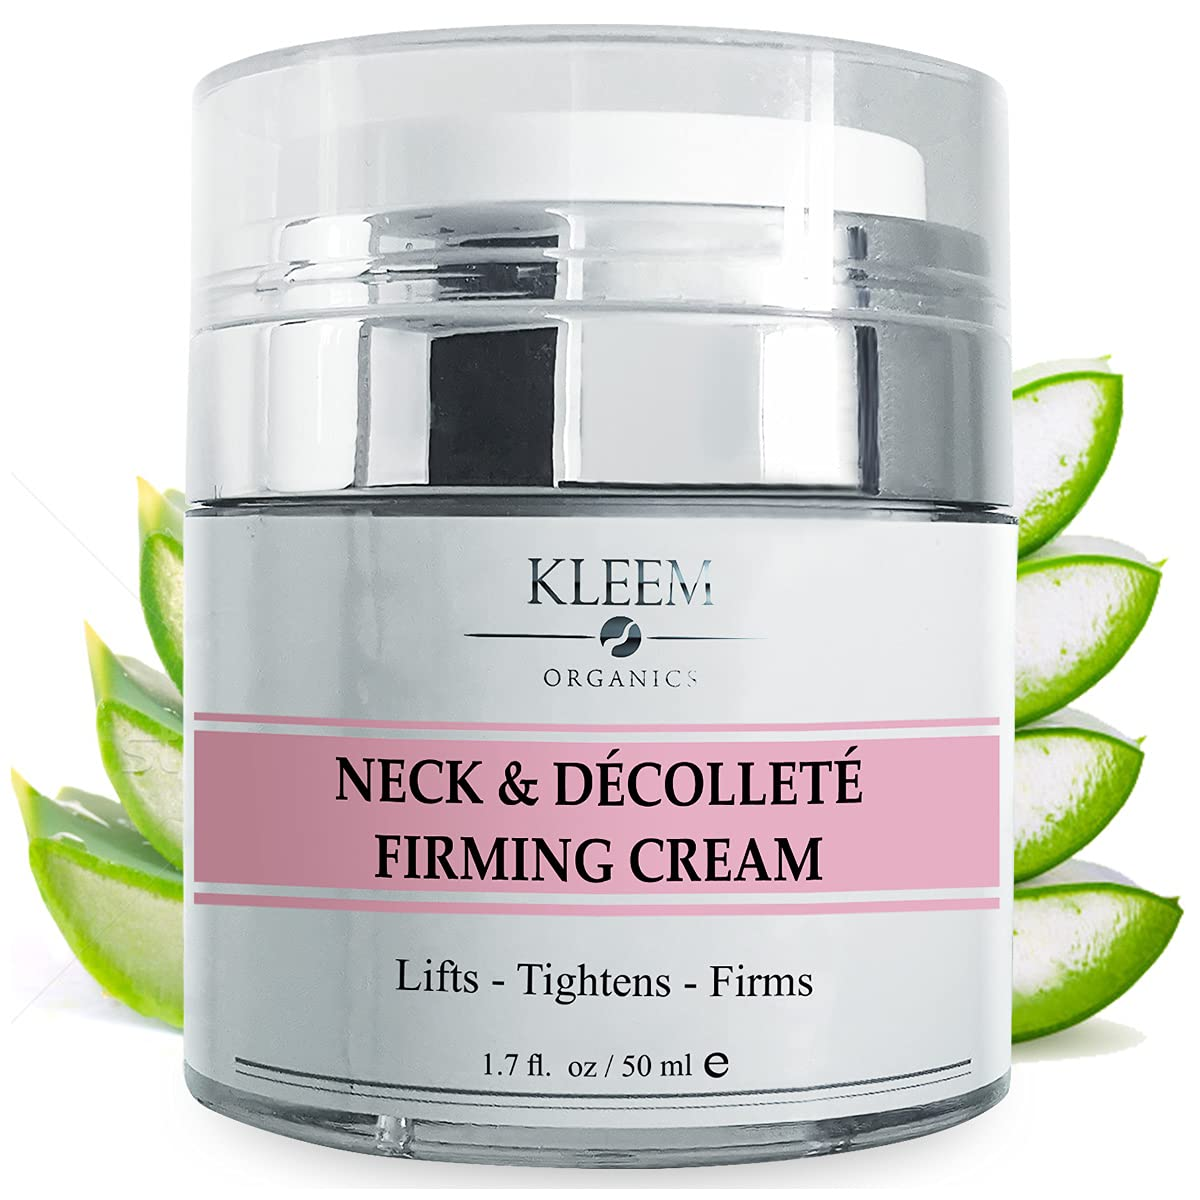 Neck and Chest Firming Cream with Peptides and Retinol   Neck Wrinkles Treatment for Women, Anti Aging Neck Cream - Best for Tightening Sagging Skin and Turkey Neck – MADE IN USA : Beauty & Personal Care